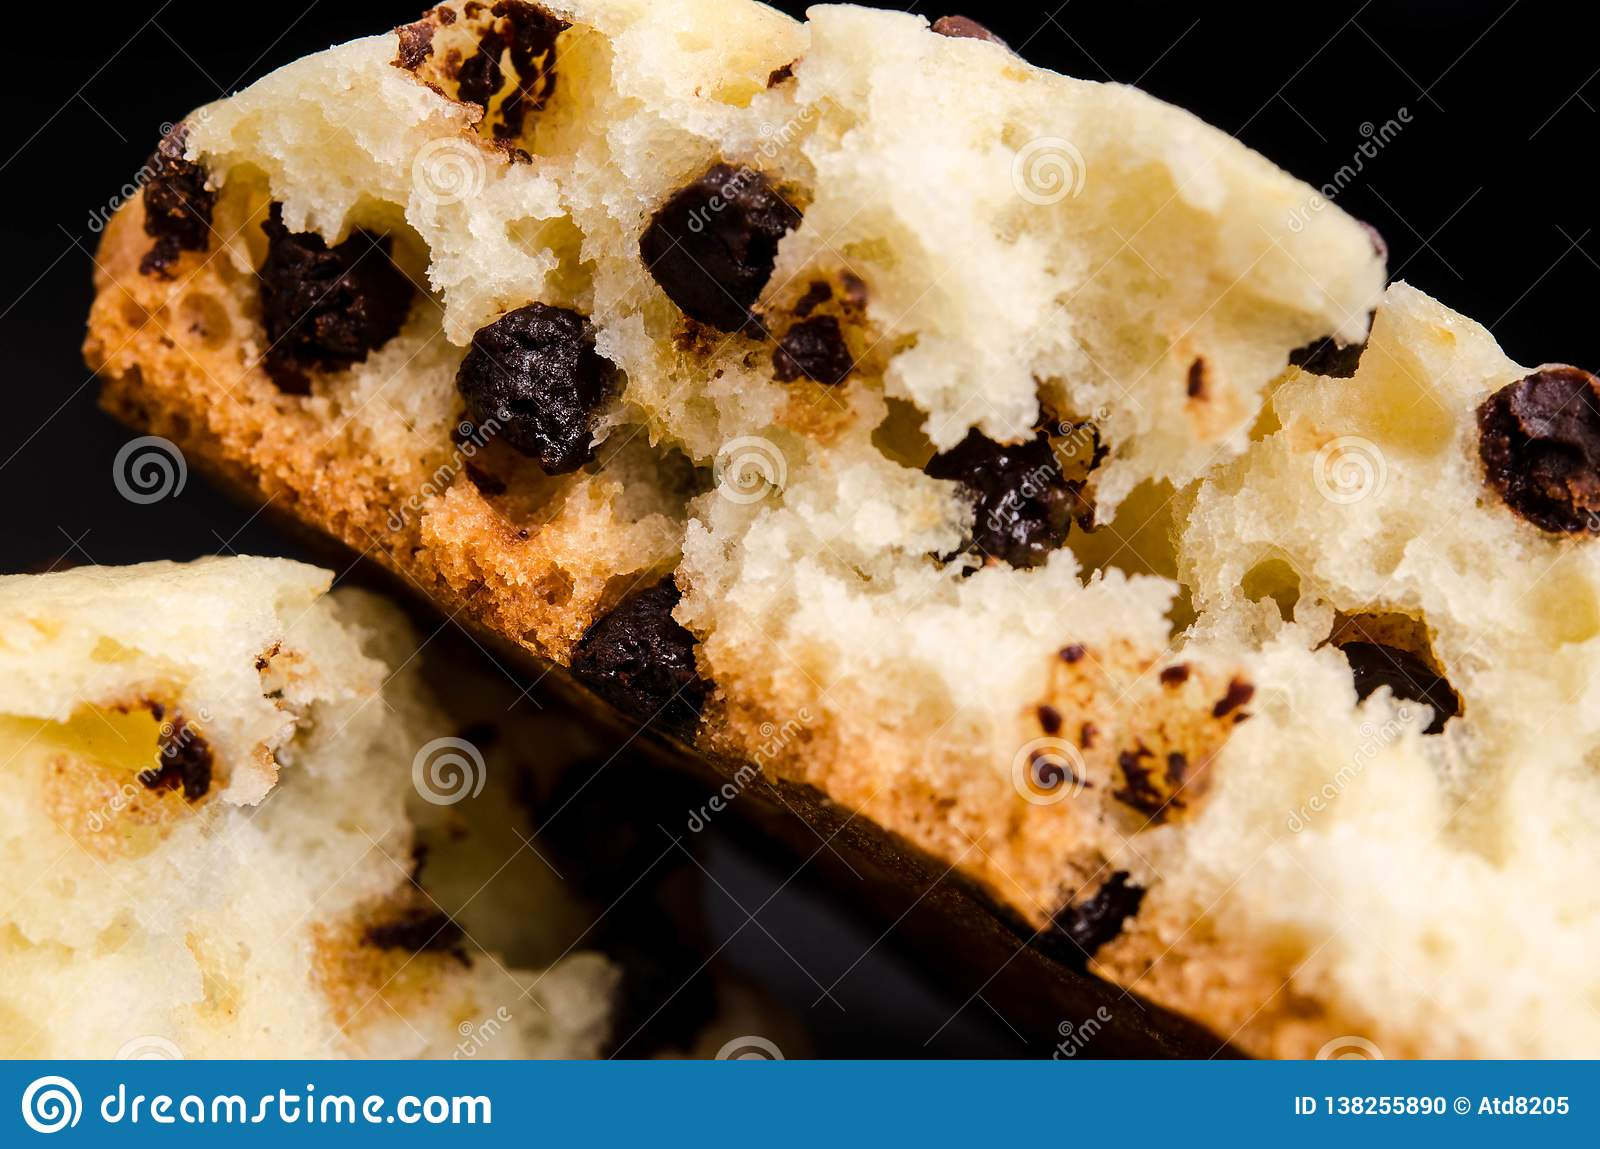 Homemade cookies with chocolate drops filling on a black background